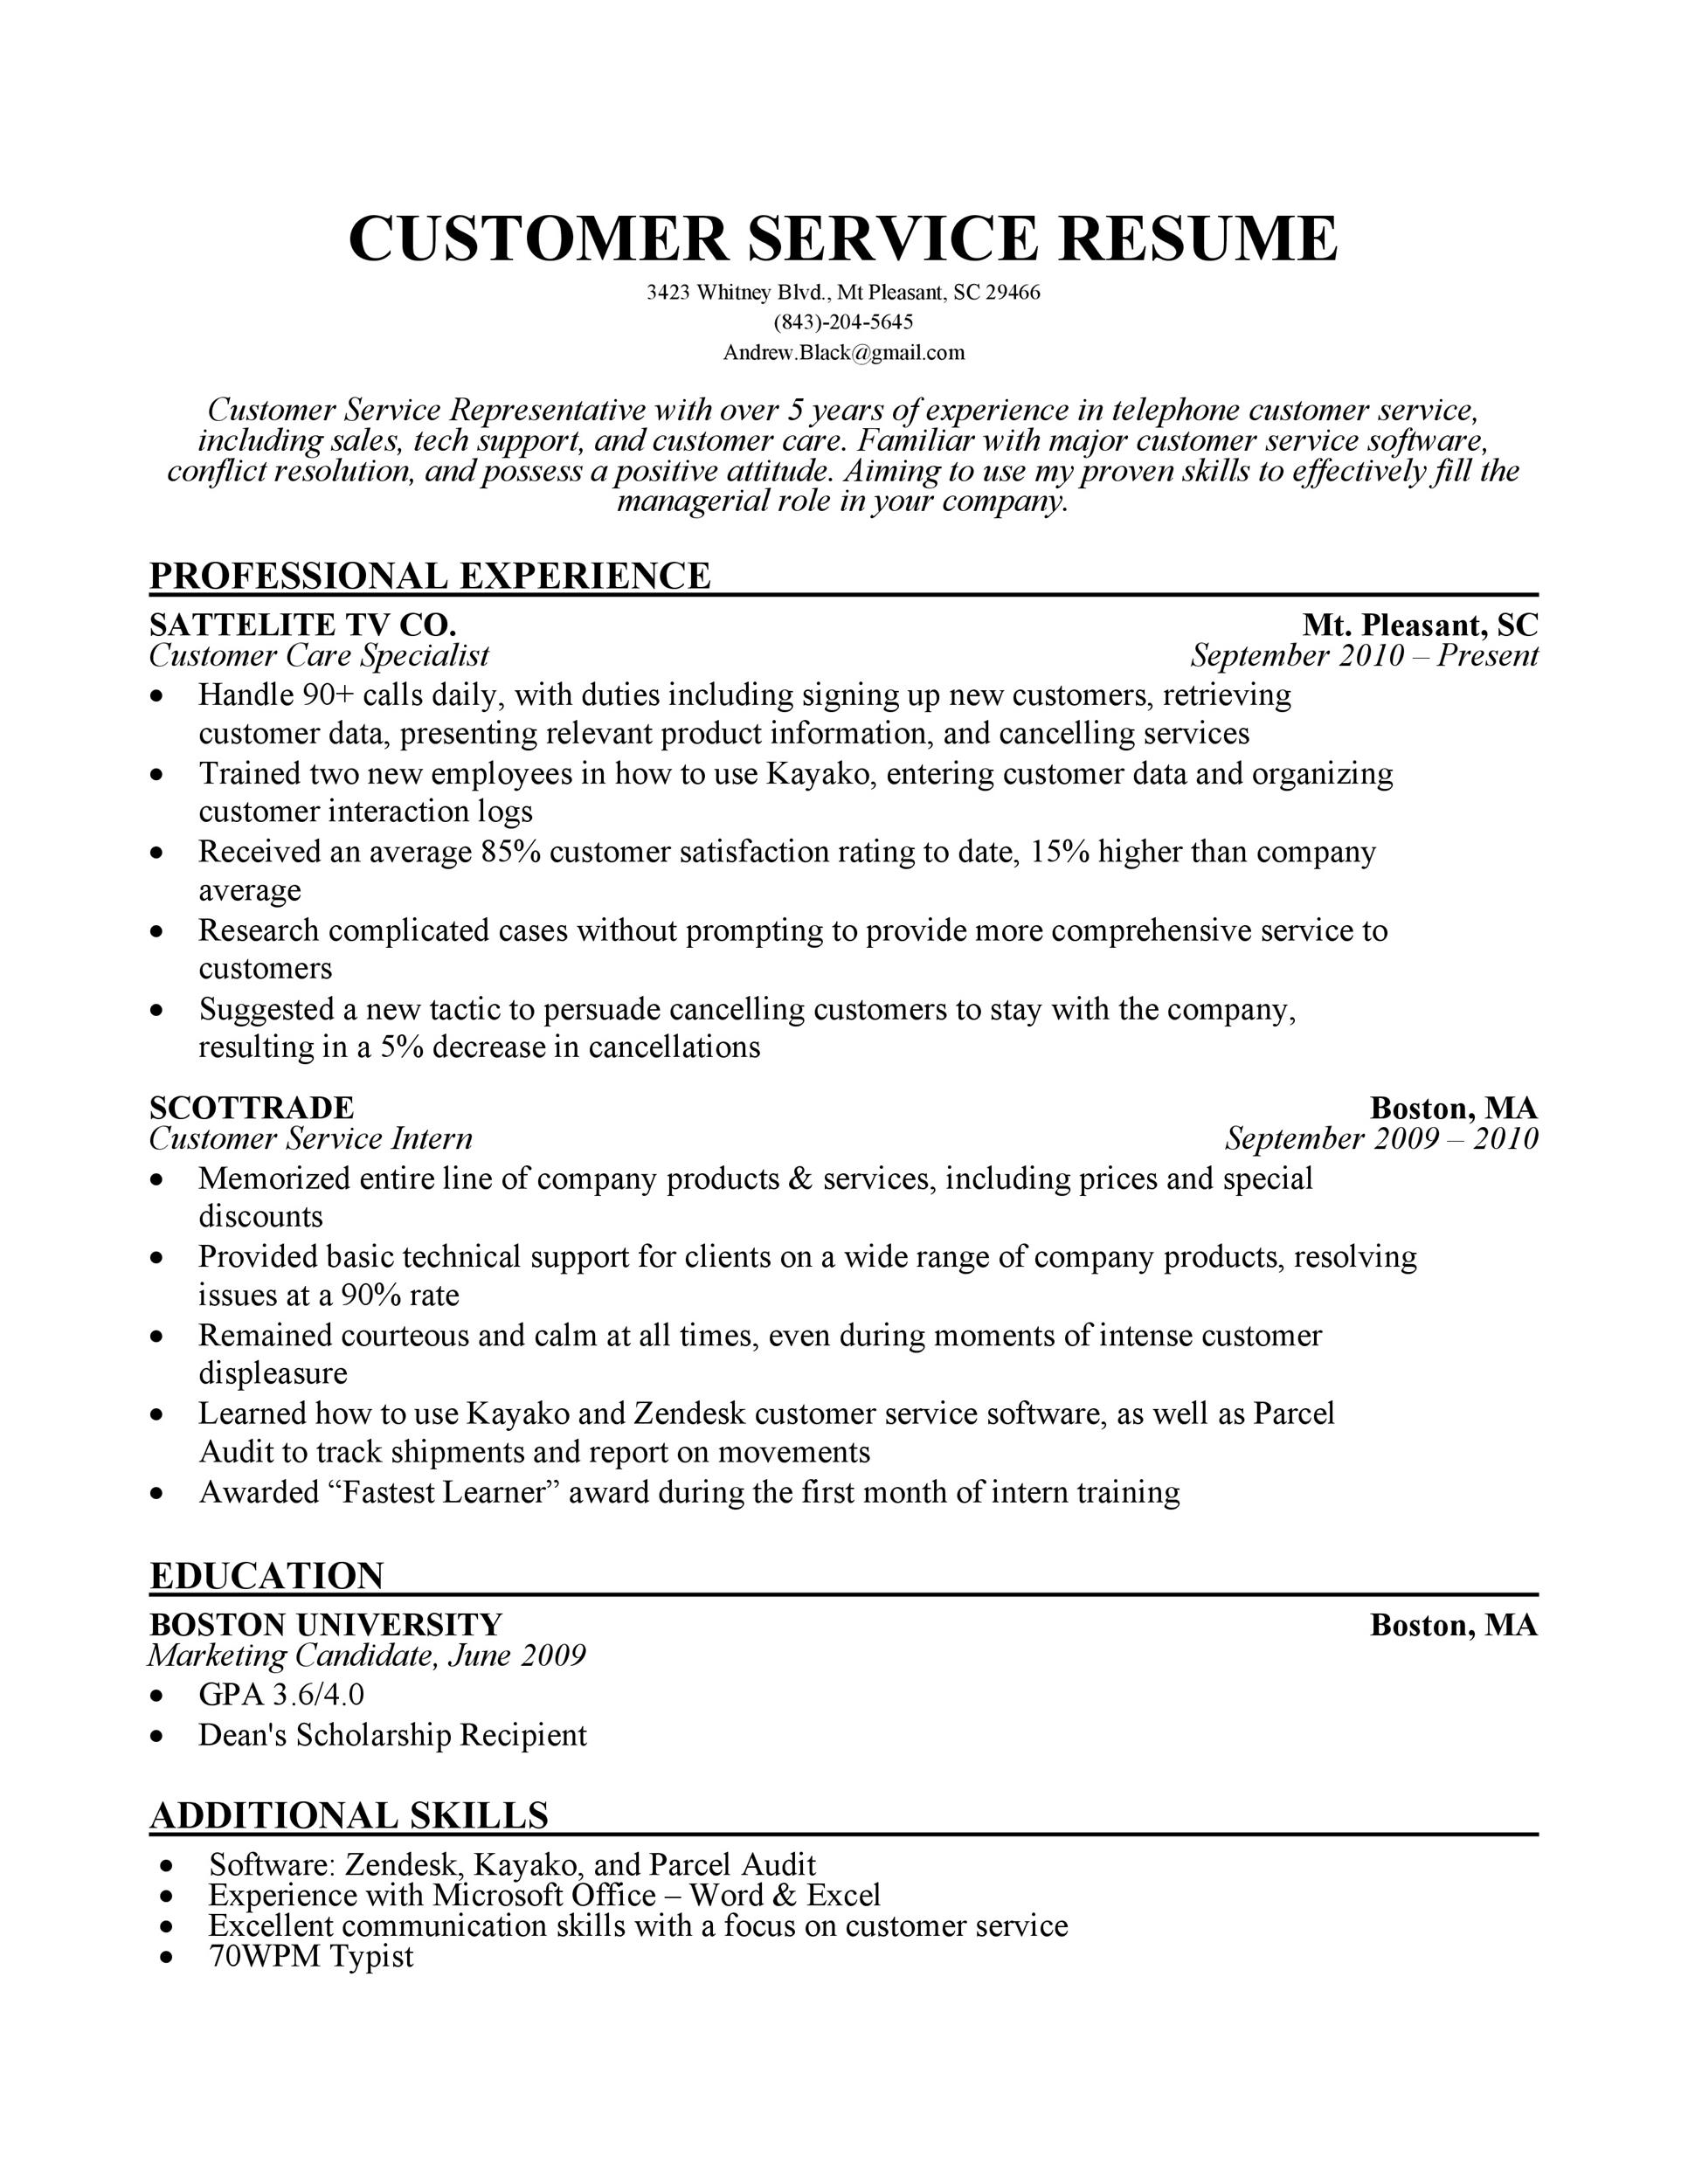 Printable Customer Service Resume Template 25  Customer Service Resume Template Free